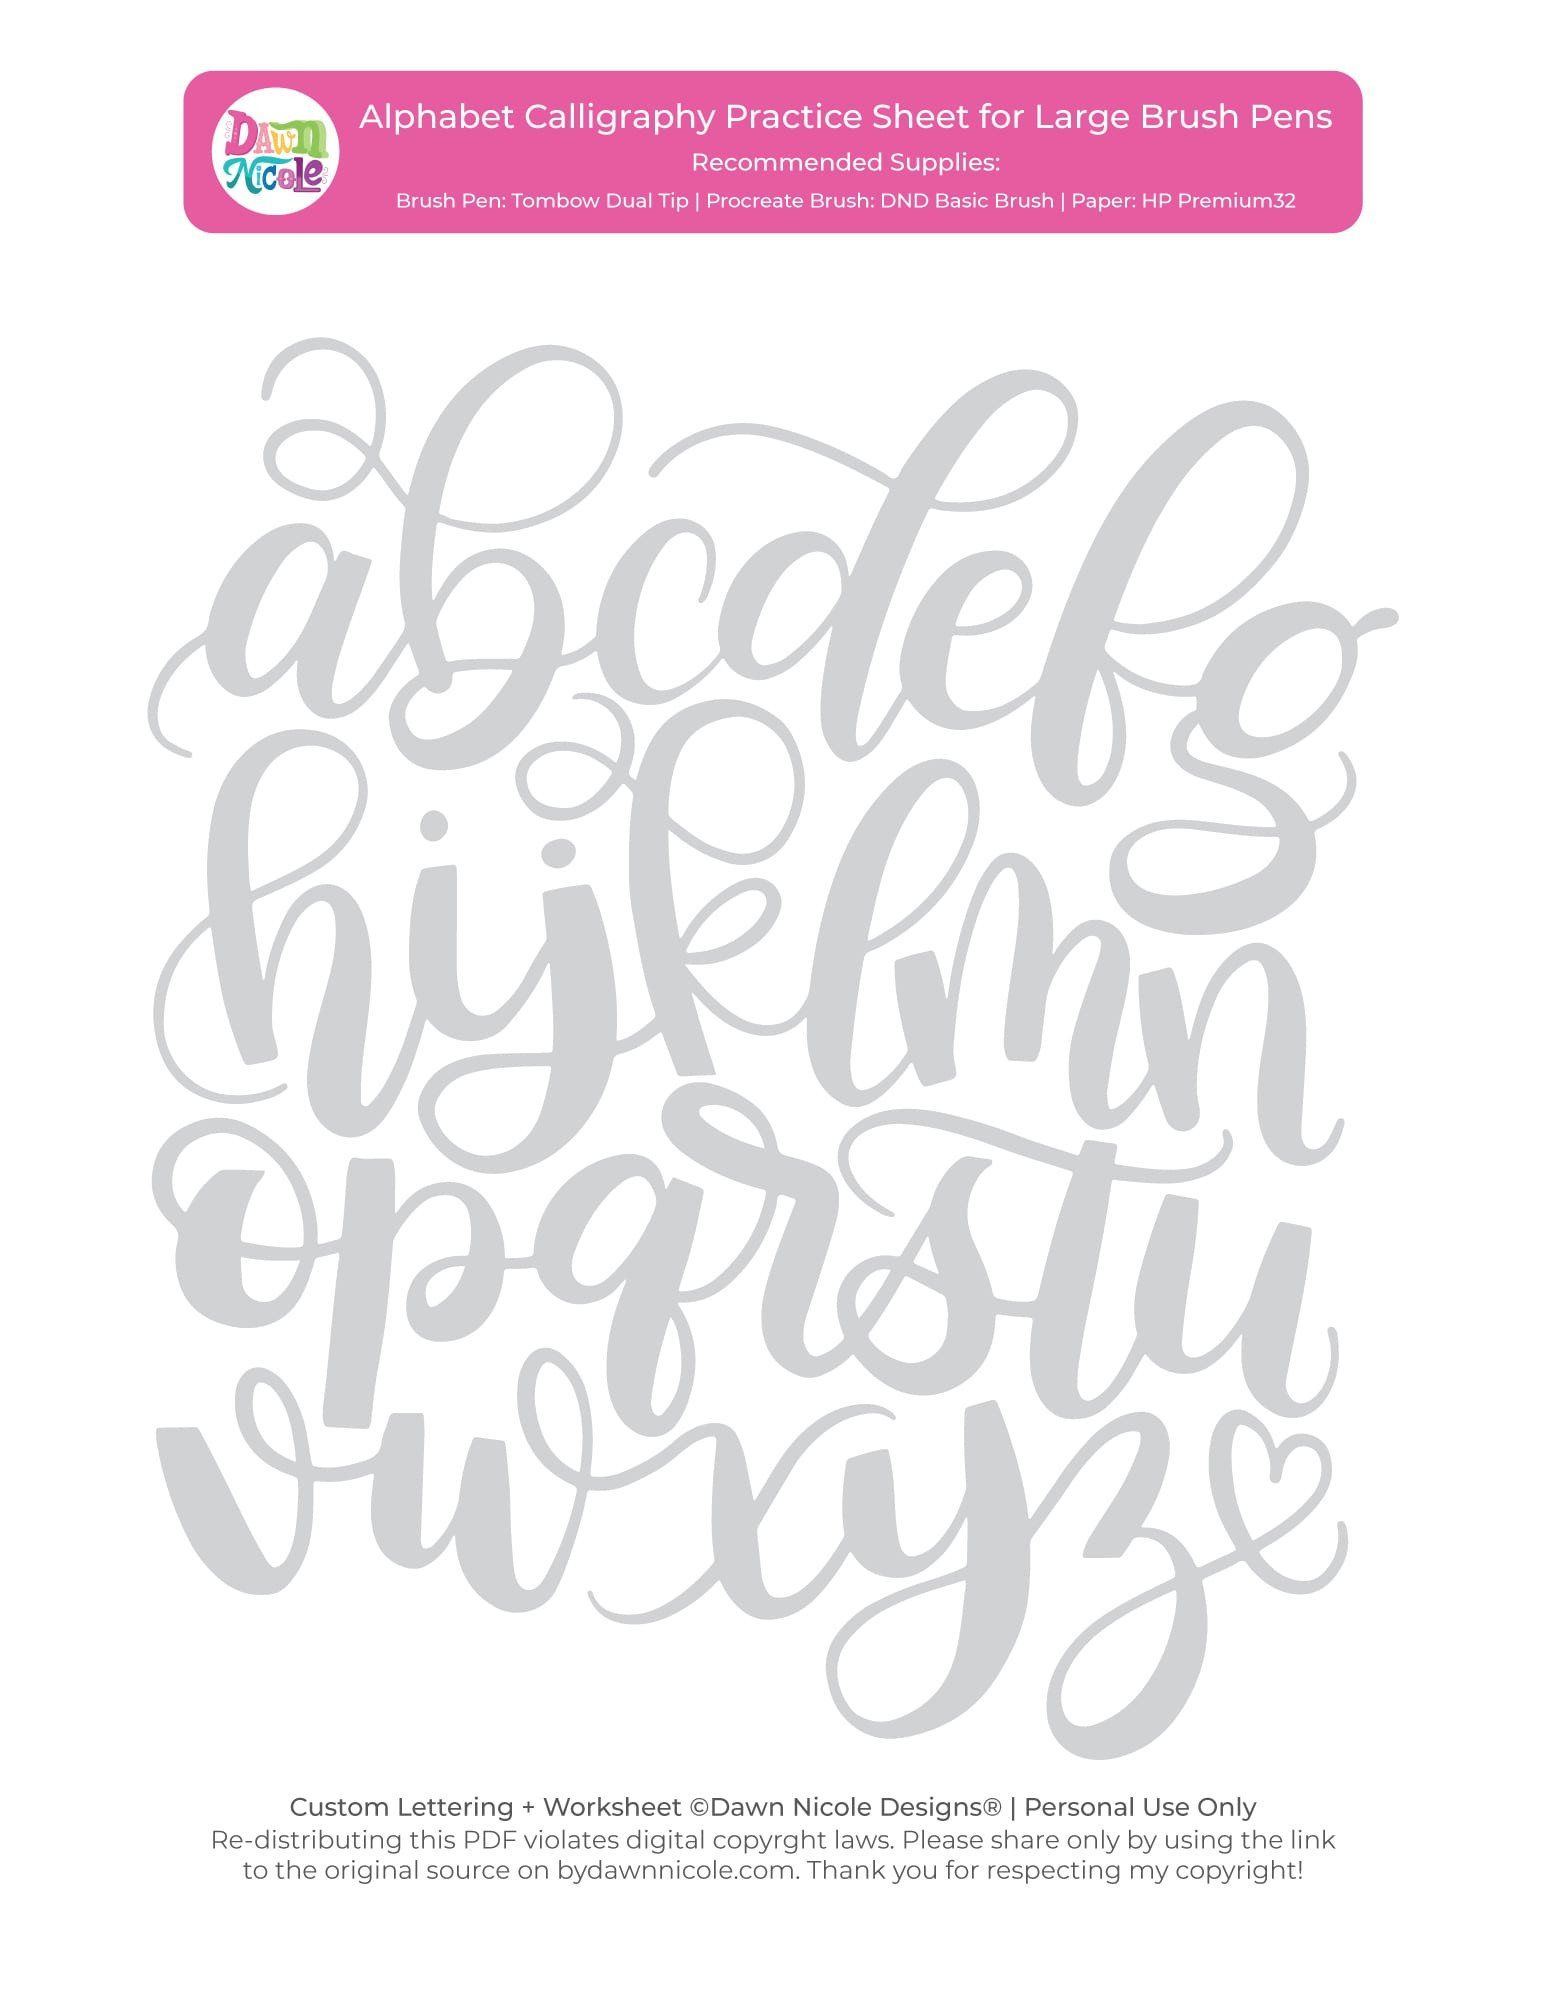 Free Calligraphy Worksheets Printable Alphabet Calligraphy